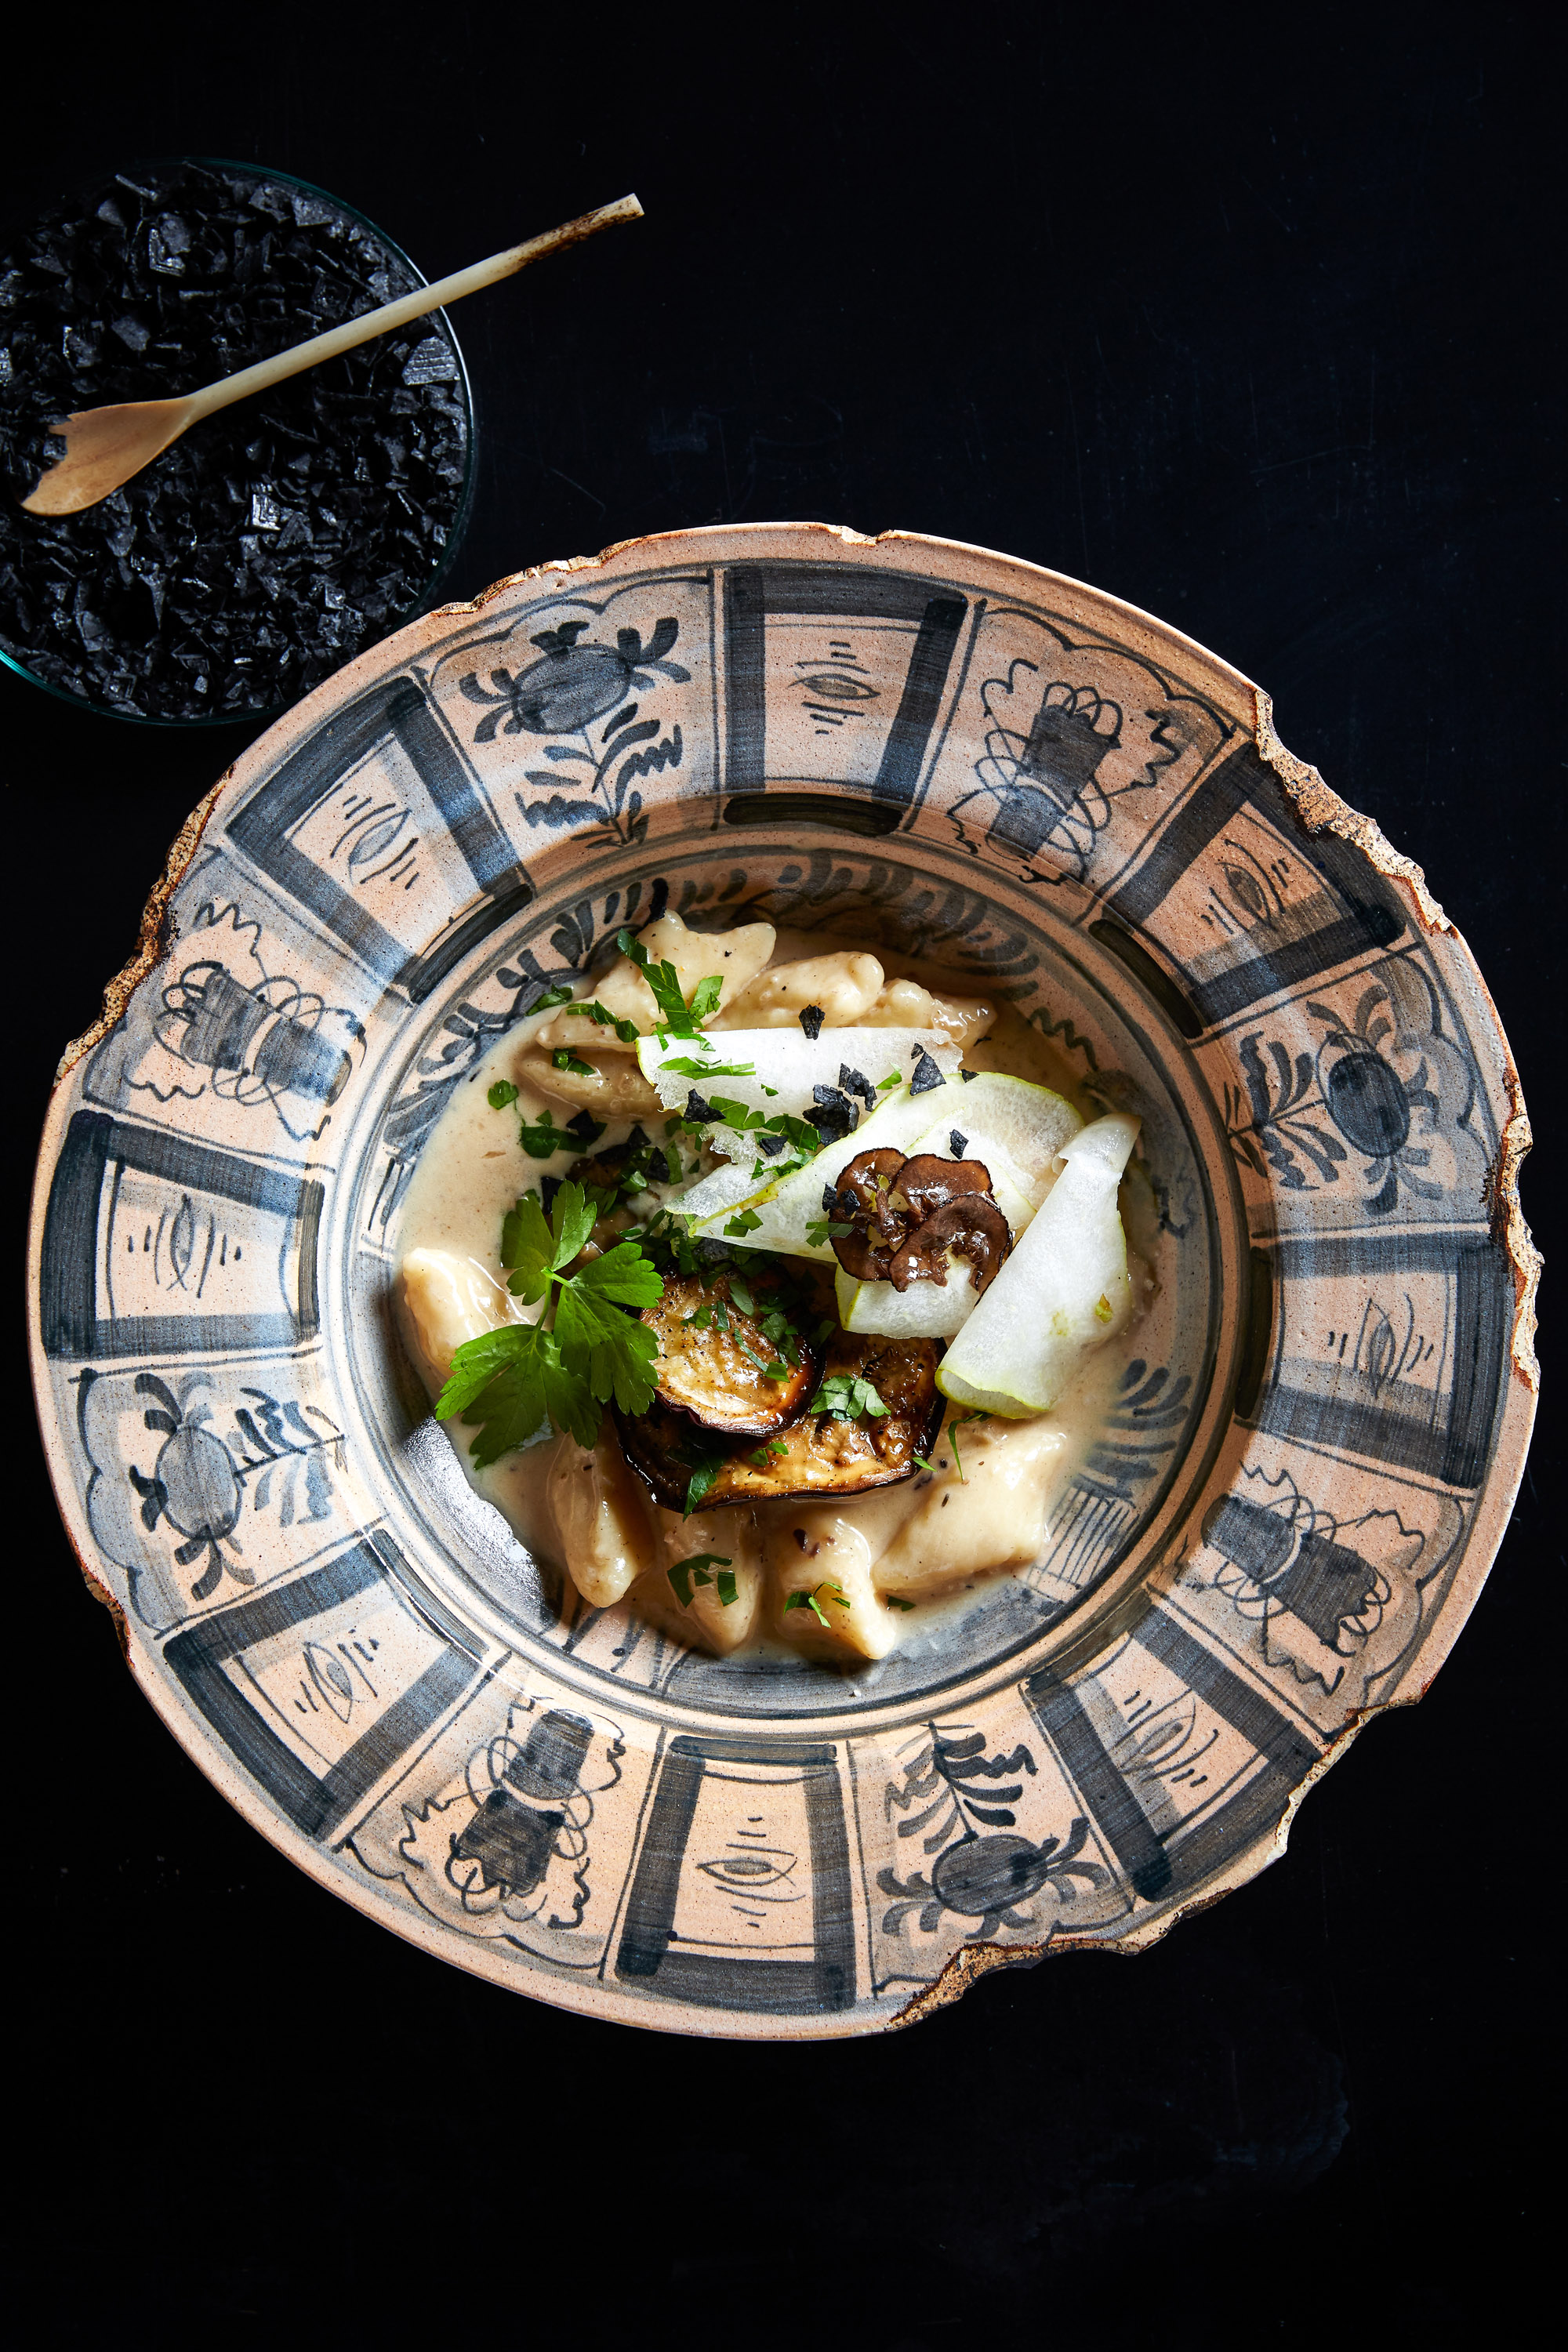 Hemelhuijs - Hand made gnocchi on roasted aubergine & pear puree with black truffle cream HR